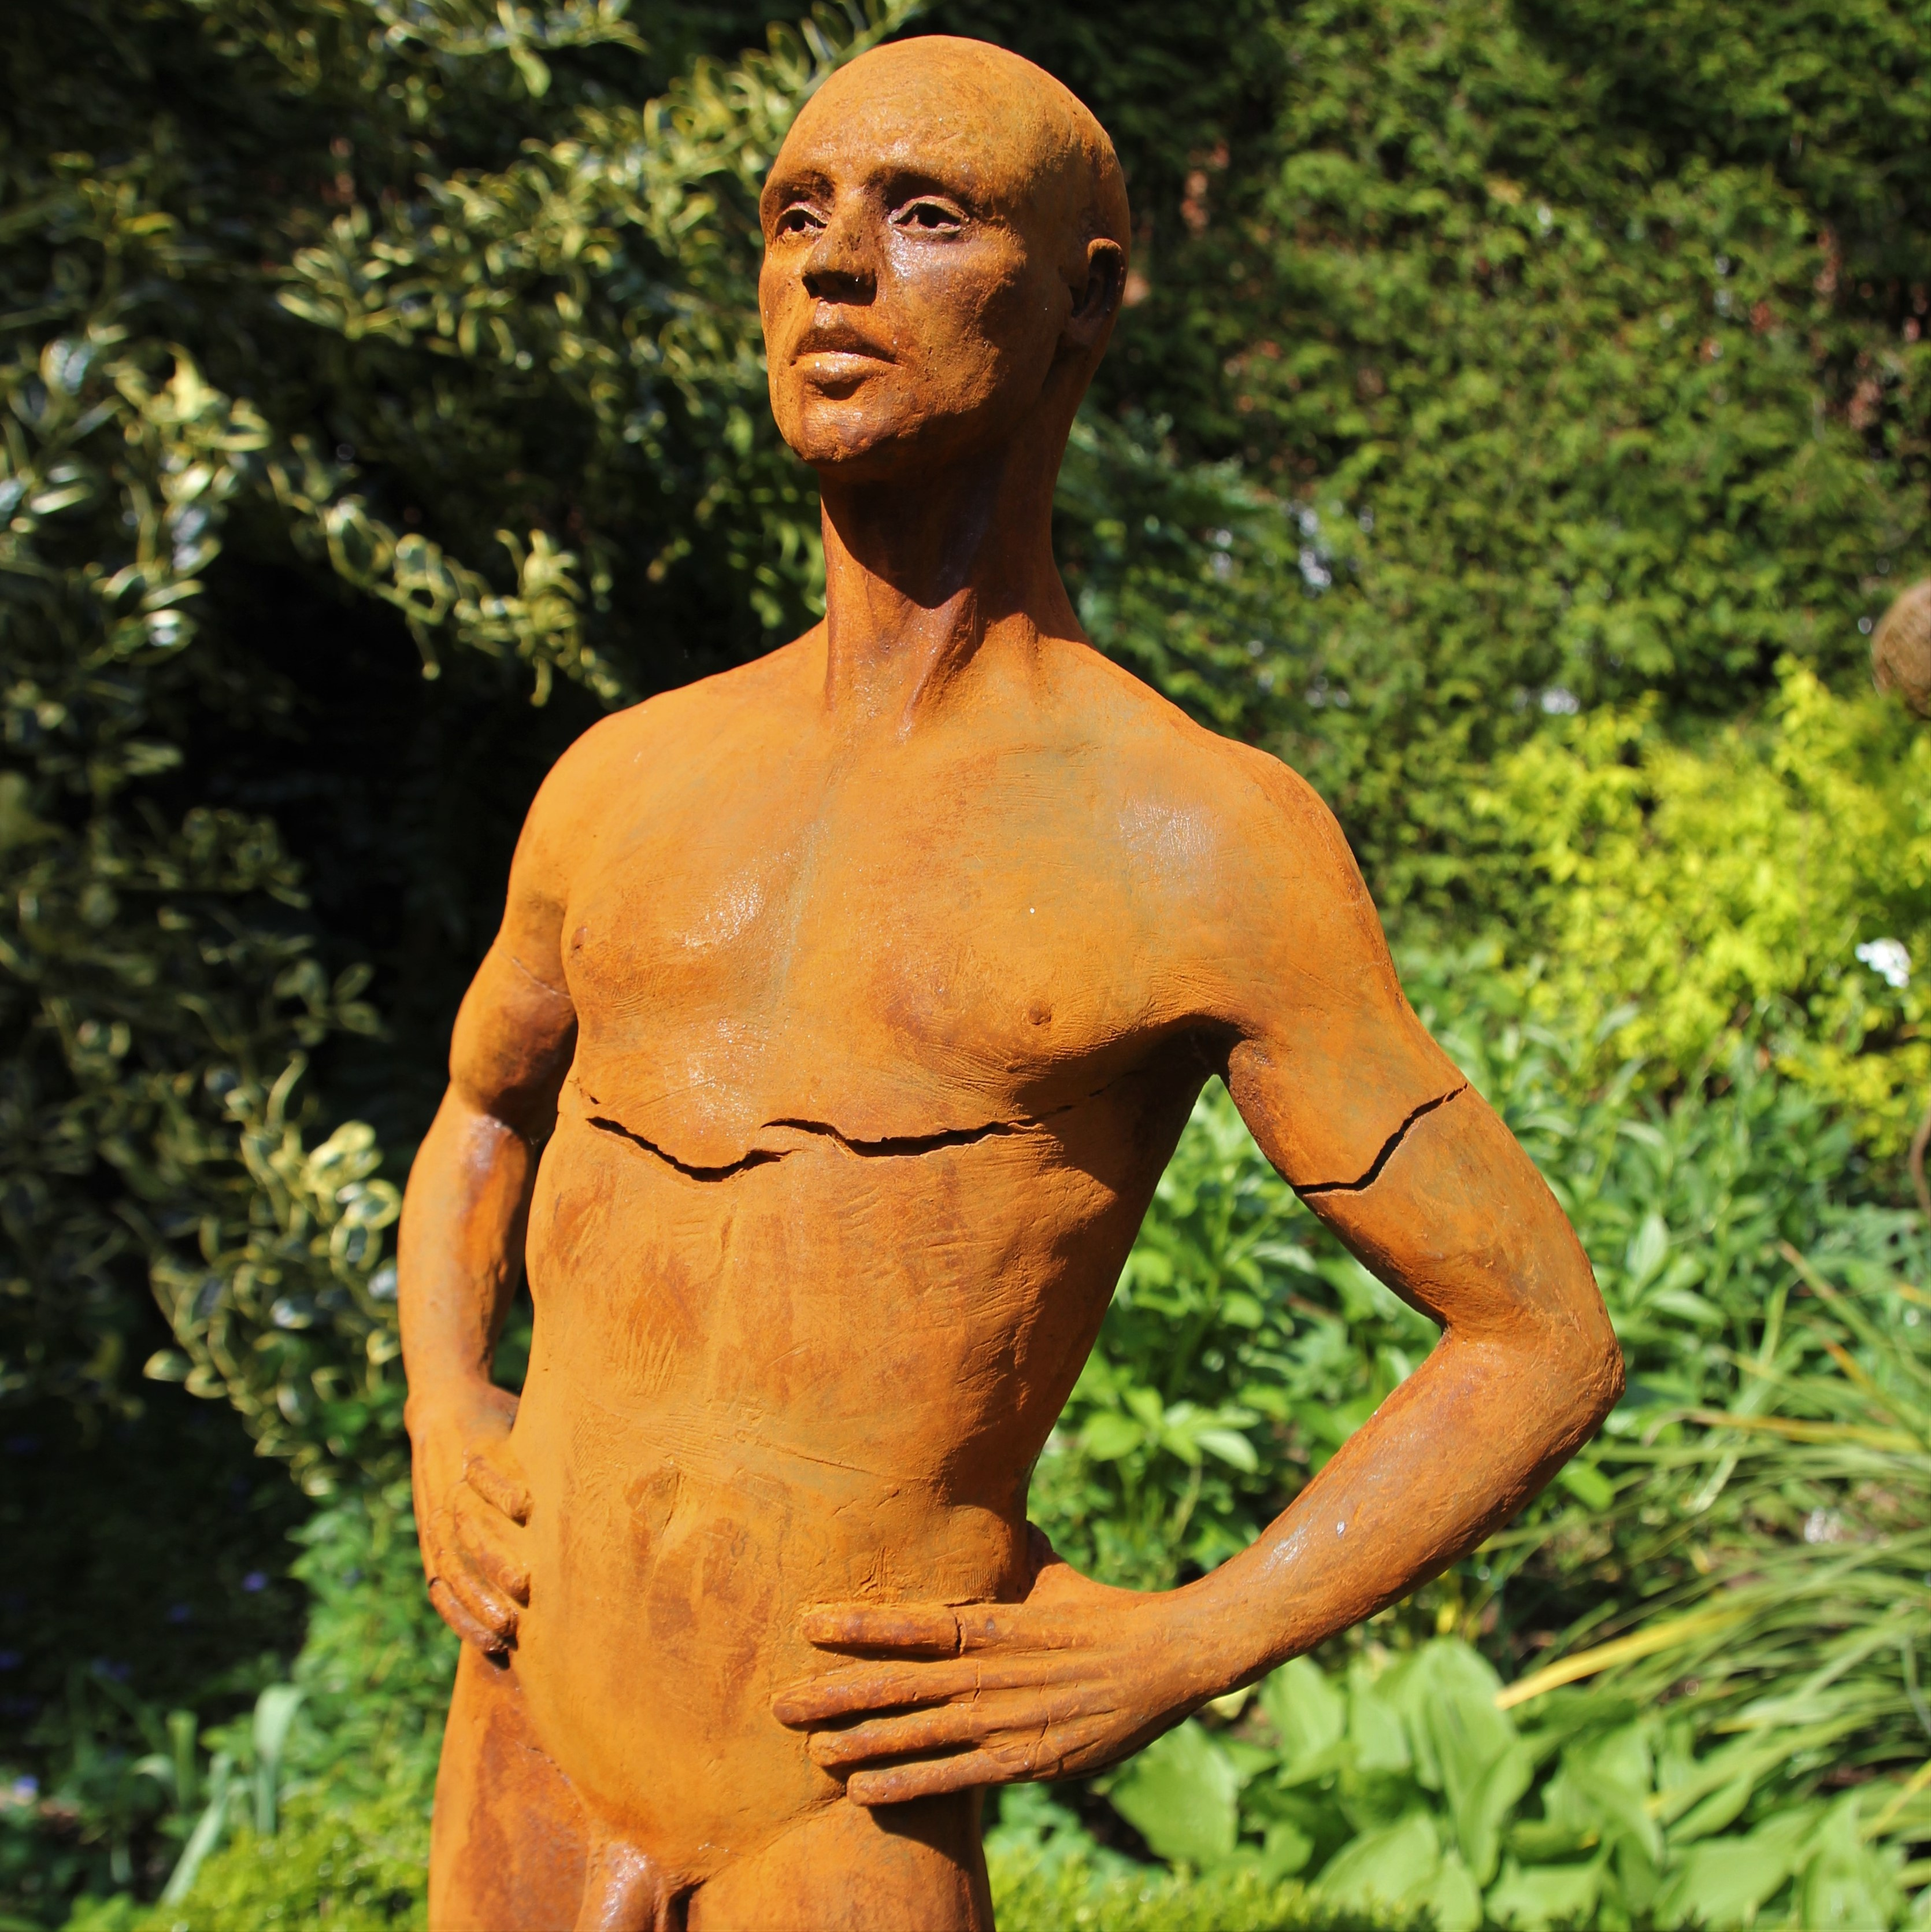 Half life sized male nude